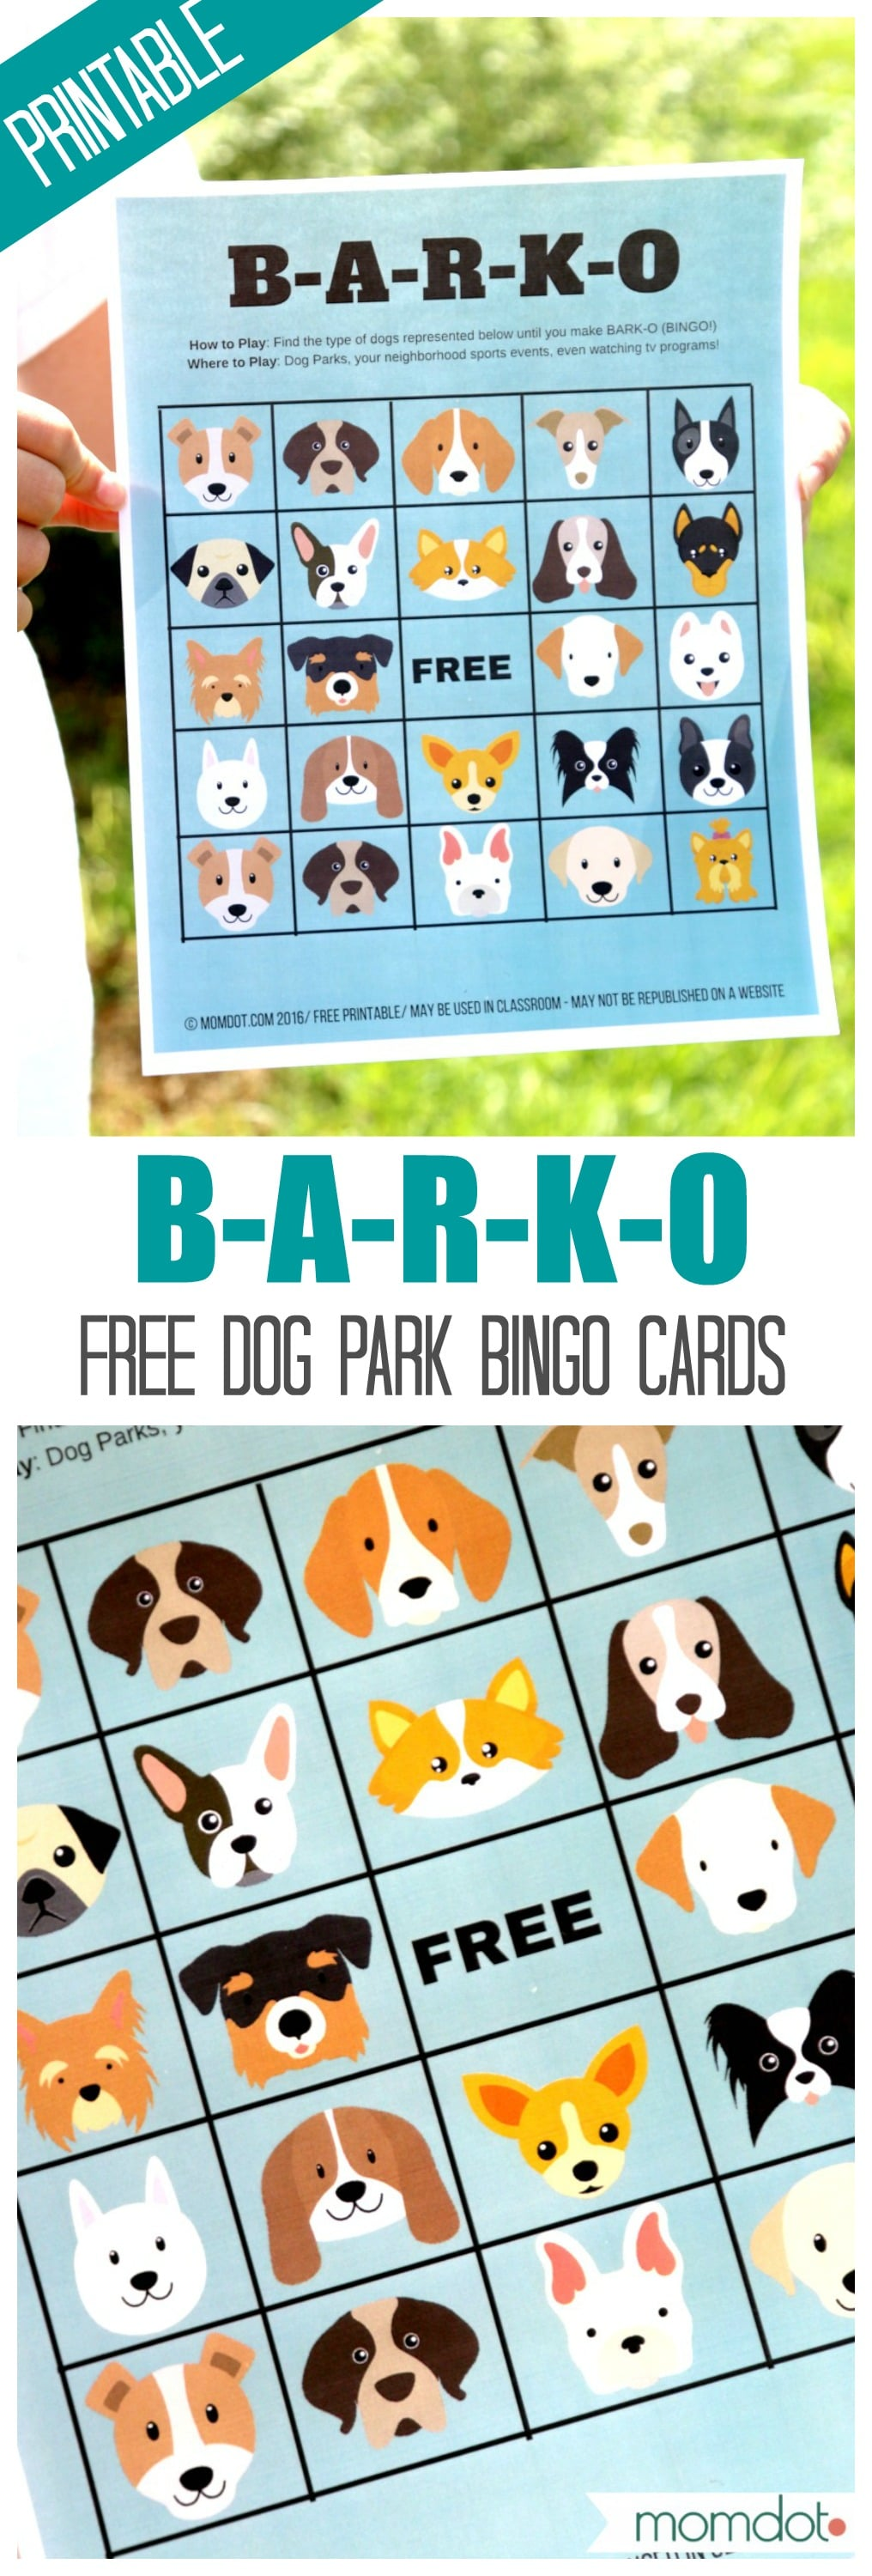 B-A-R-K-O : FREE Printable for DOG BINGO! Find the right breeds at the dog park, neighborhood or even while watching TV and be the first to yell BARKO! Kids will adore marking off each dog they find!